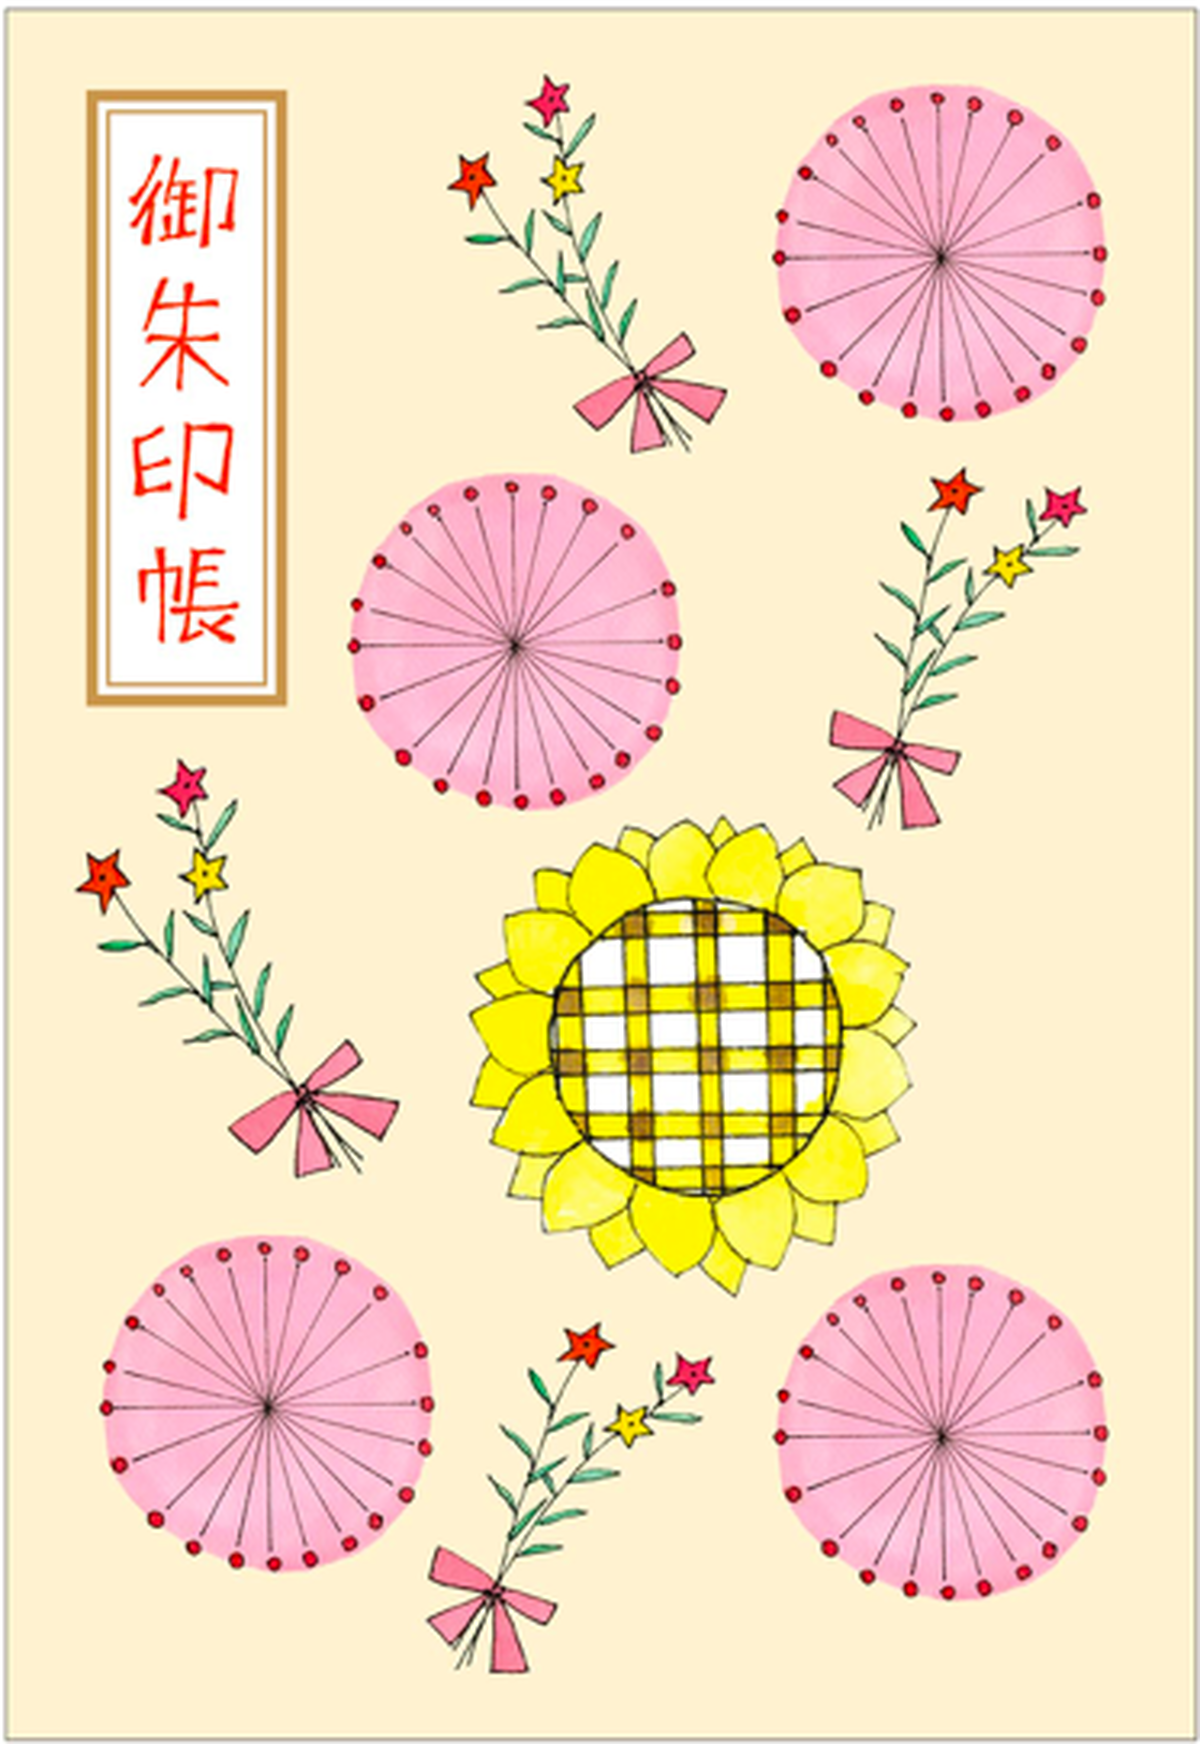 Images of 陸奥A子 - JapaneseClass.jp